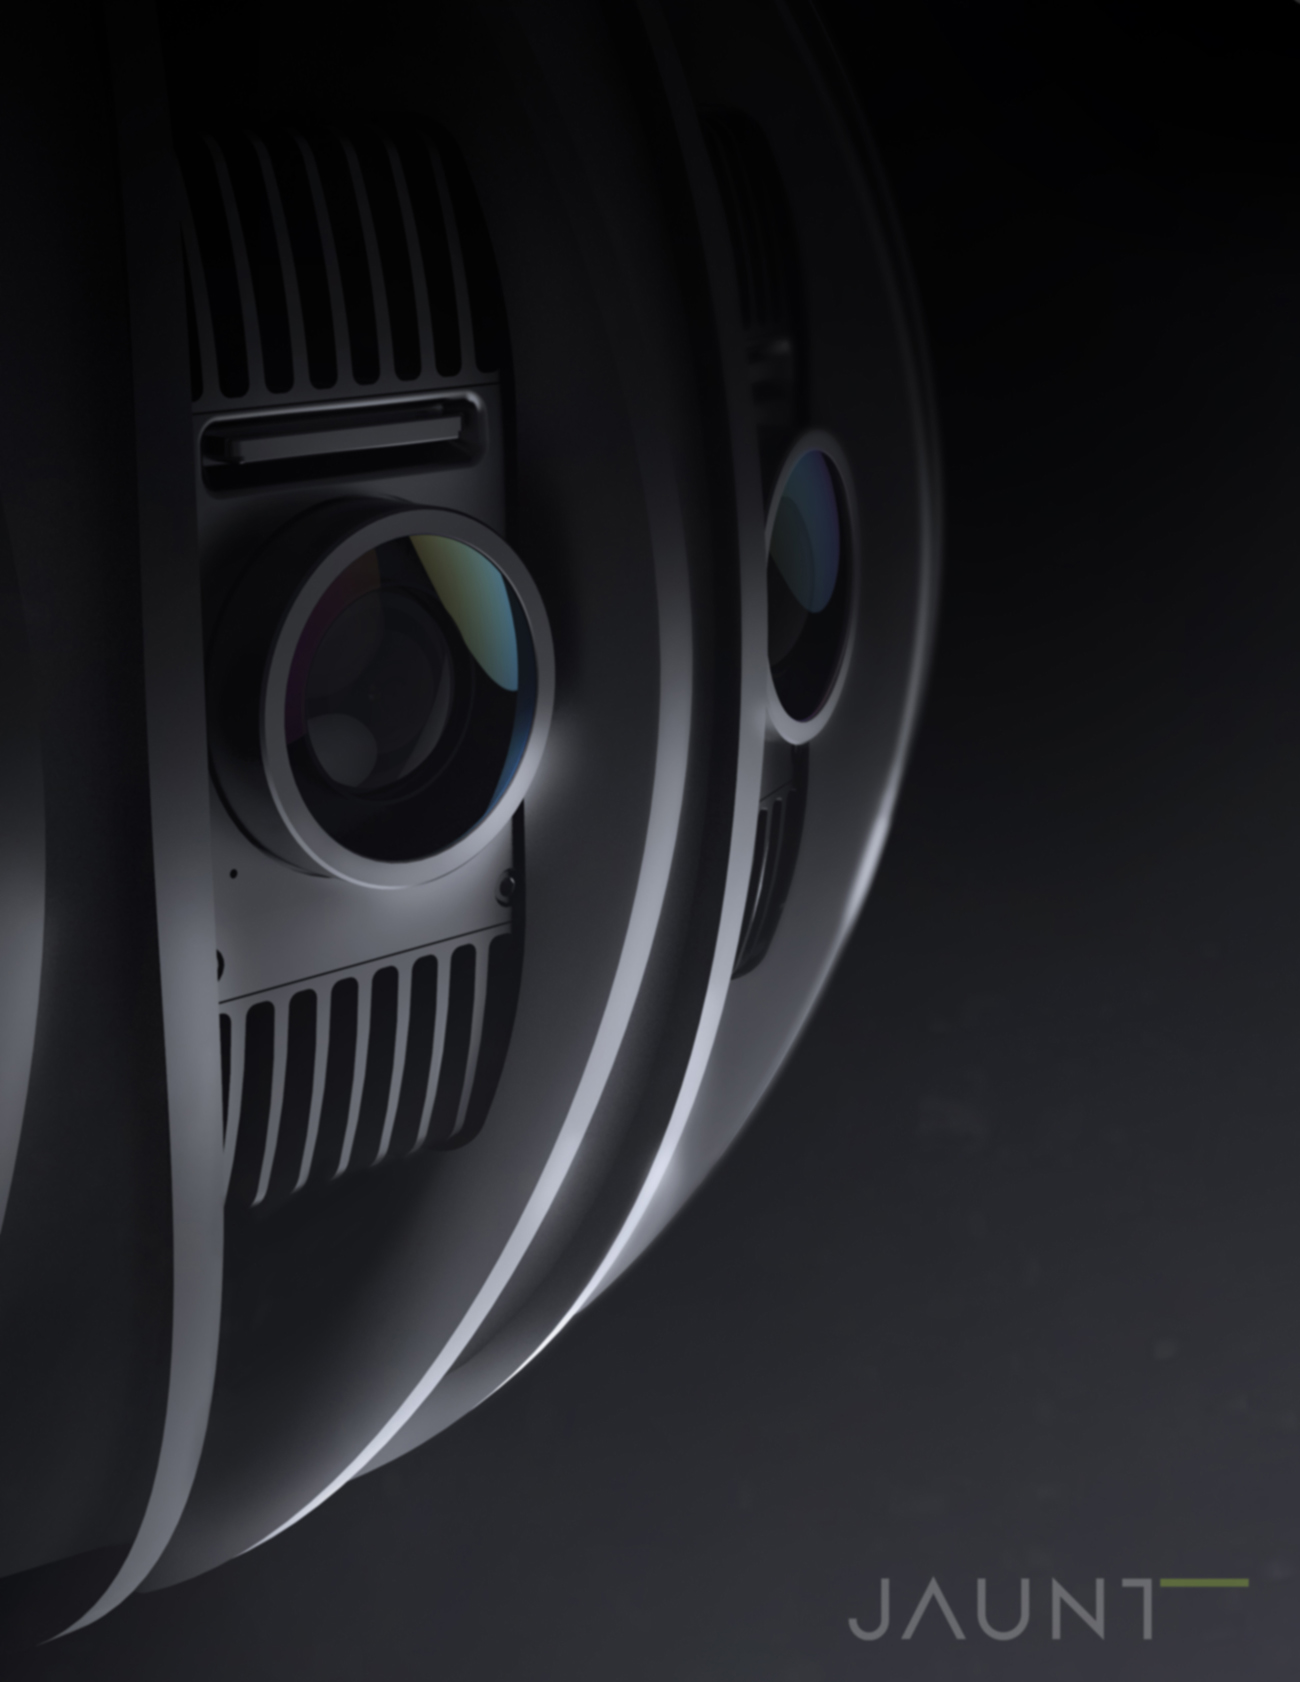 Neo is Jaunt's fifth generation camera system.